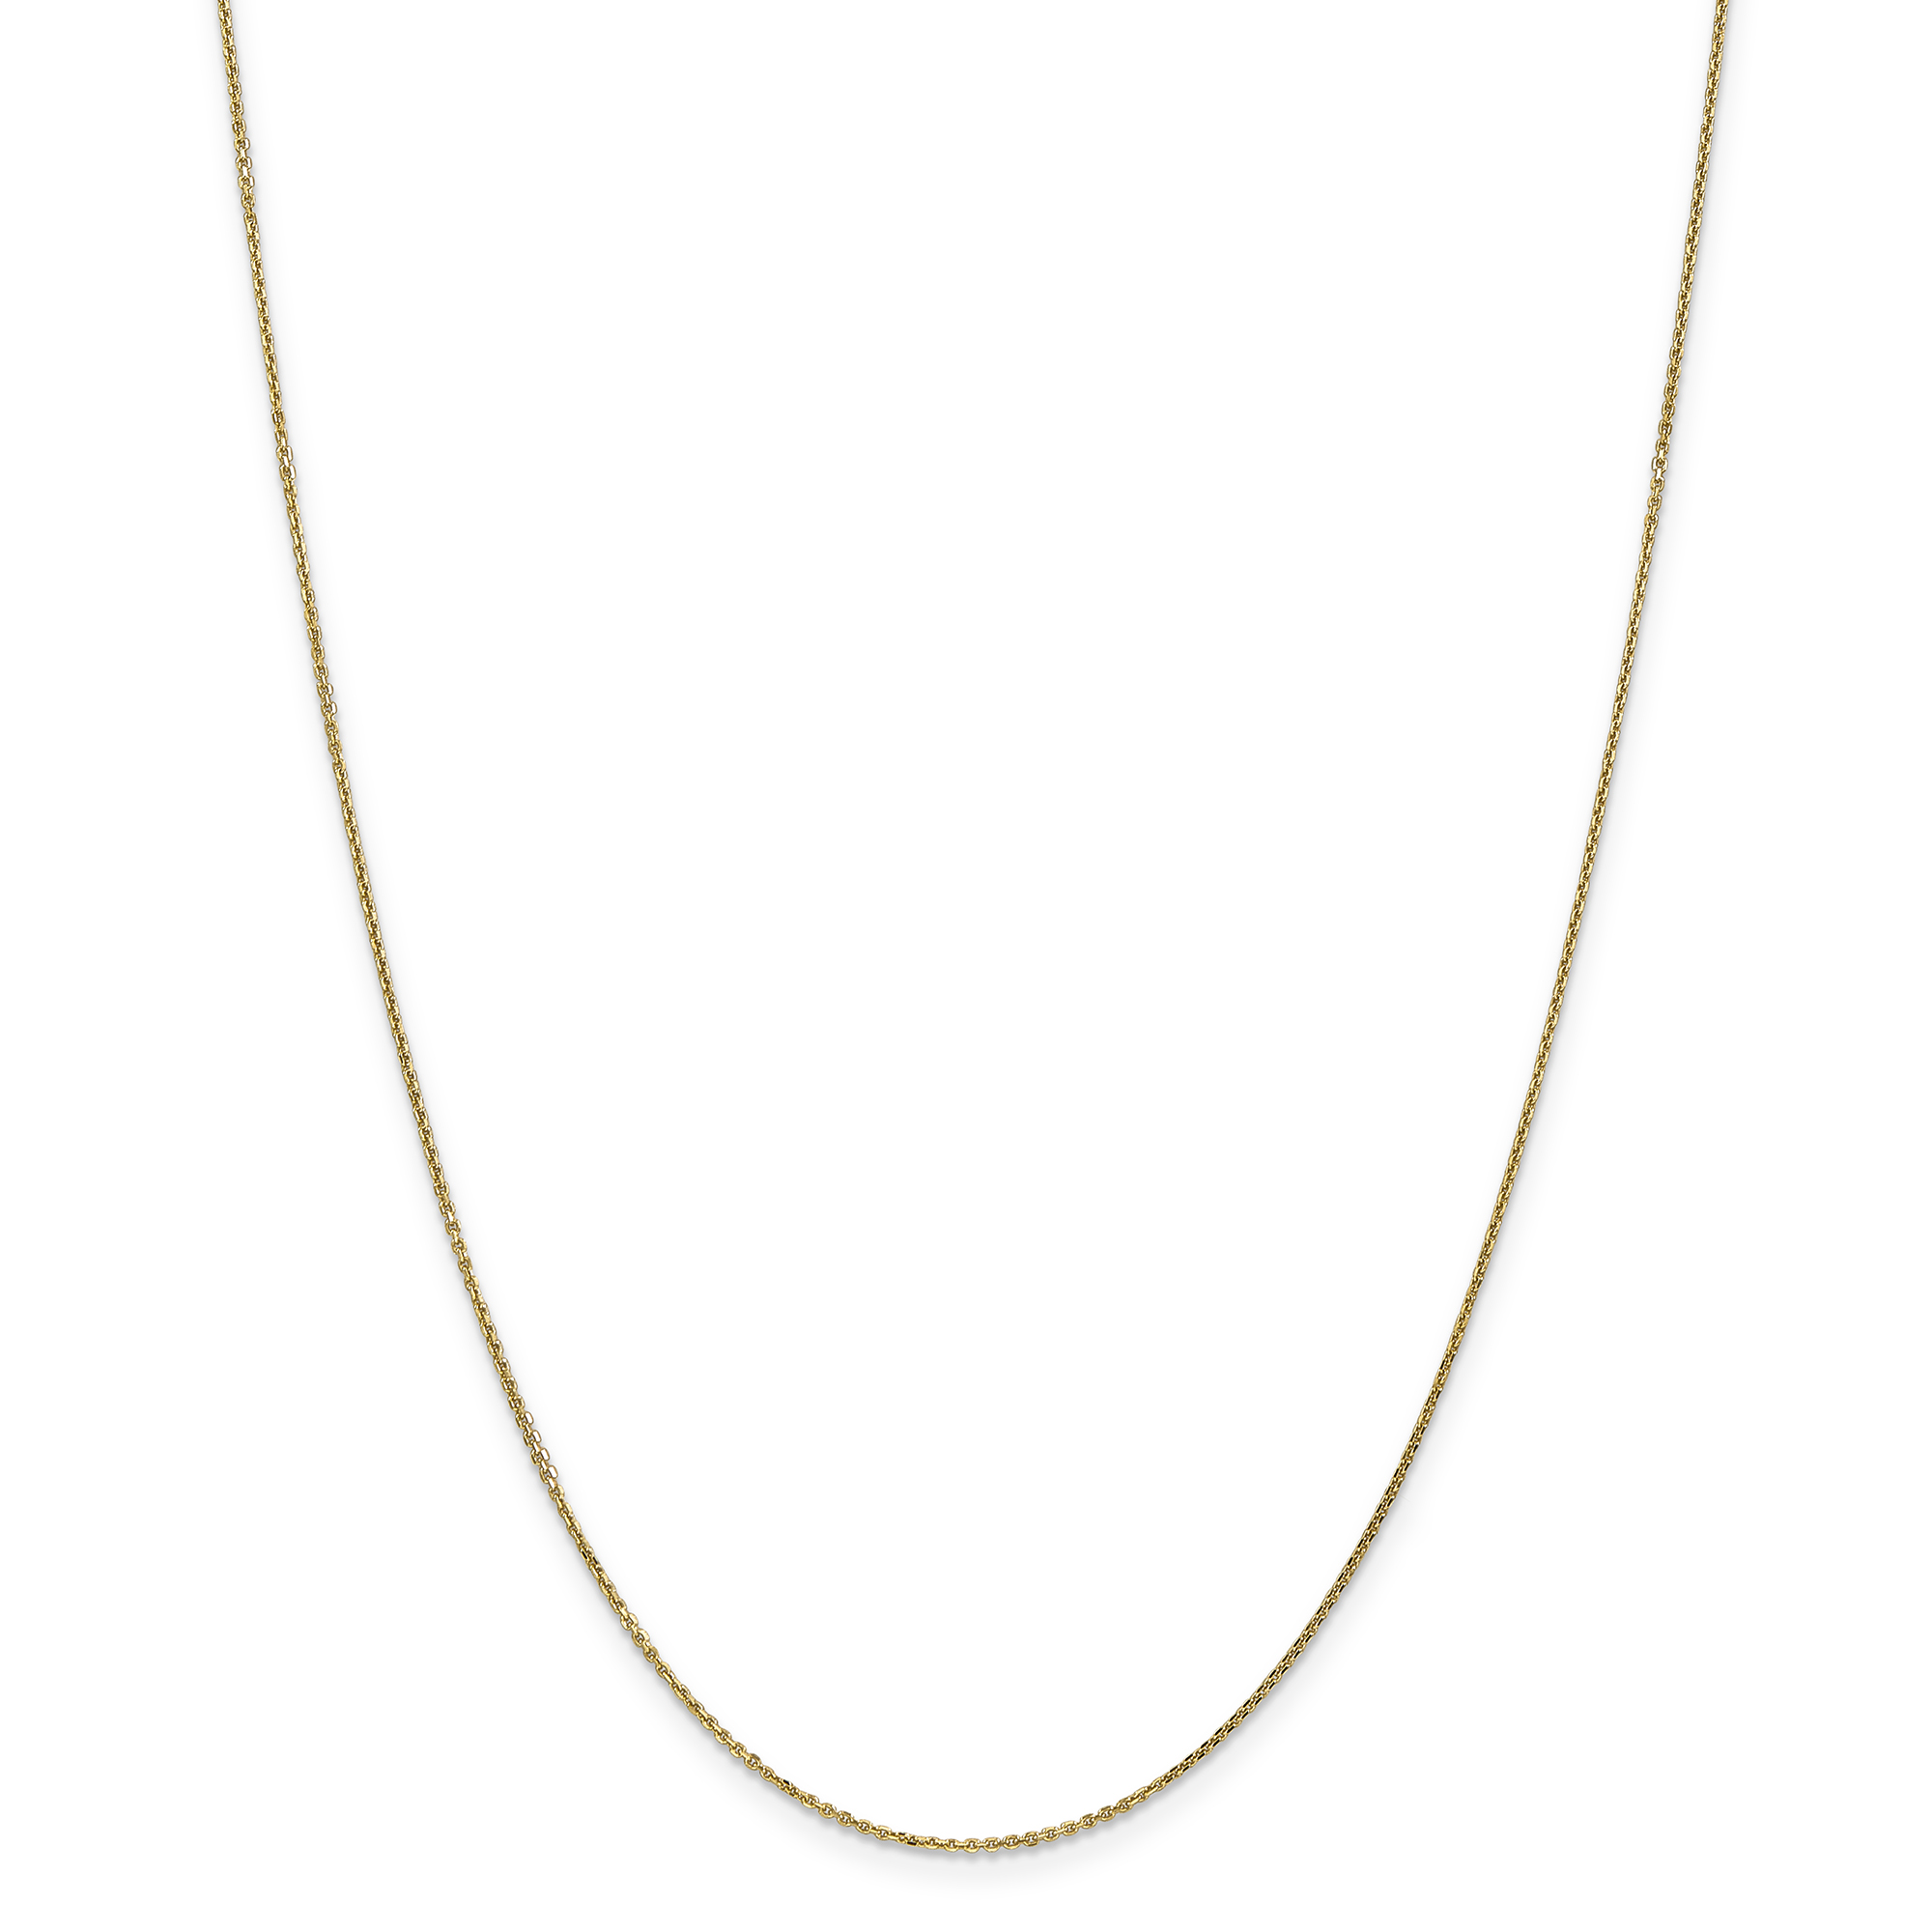 14k Yellow Gold .95mm Link Cable Chain Necklace 20 Inch Pendant Charm Round Fine Jewelry Gifts For Women For Her - image 5 of 5